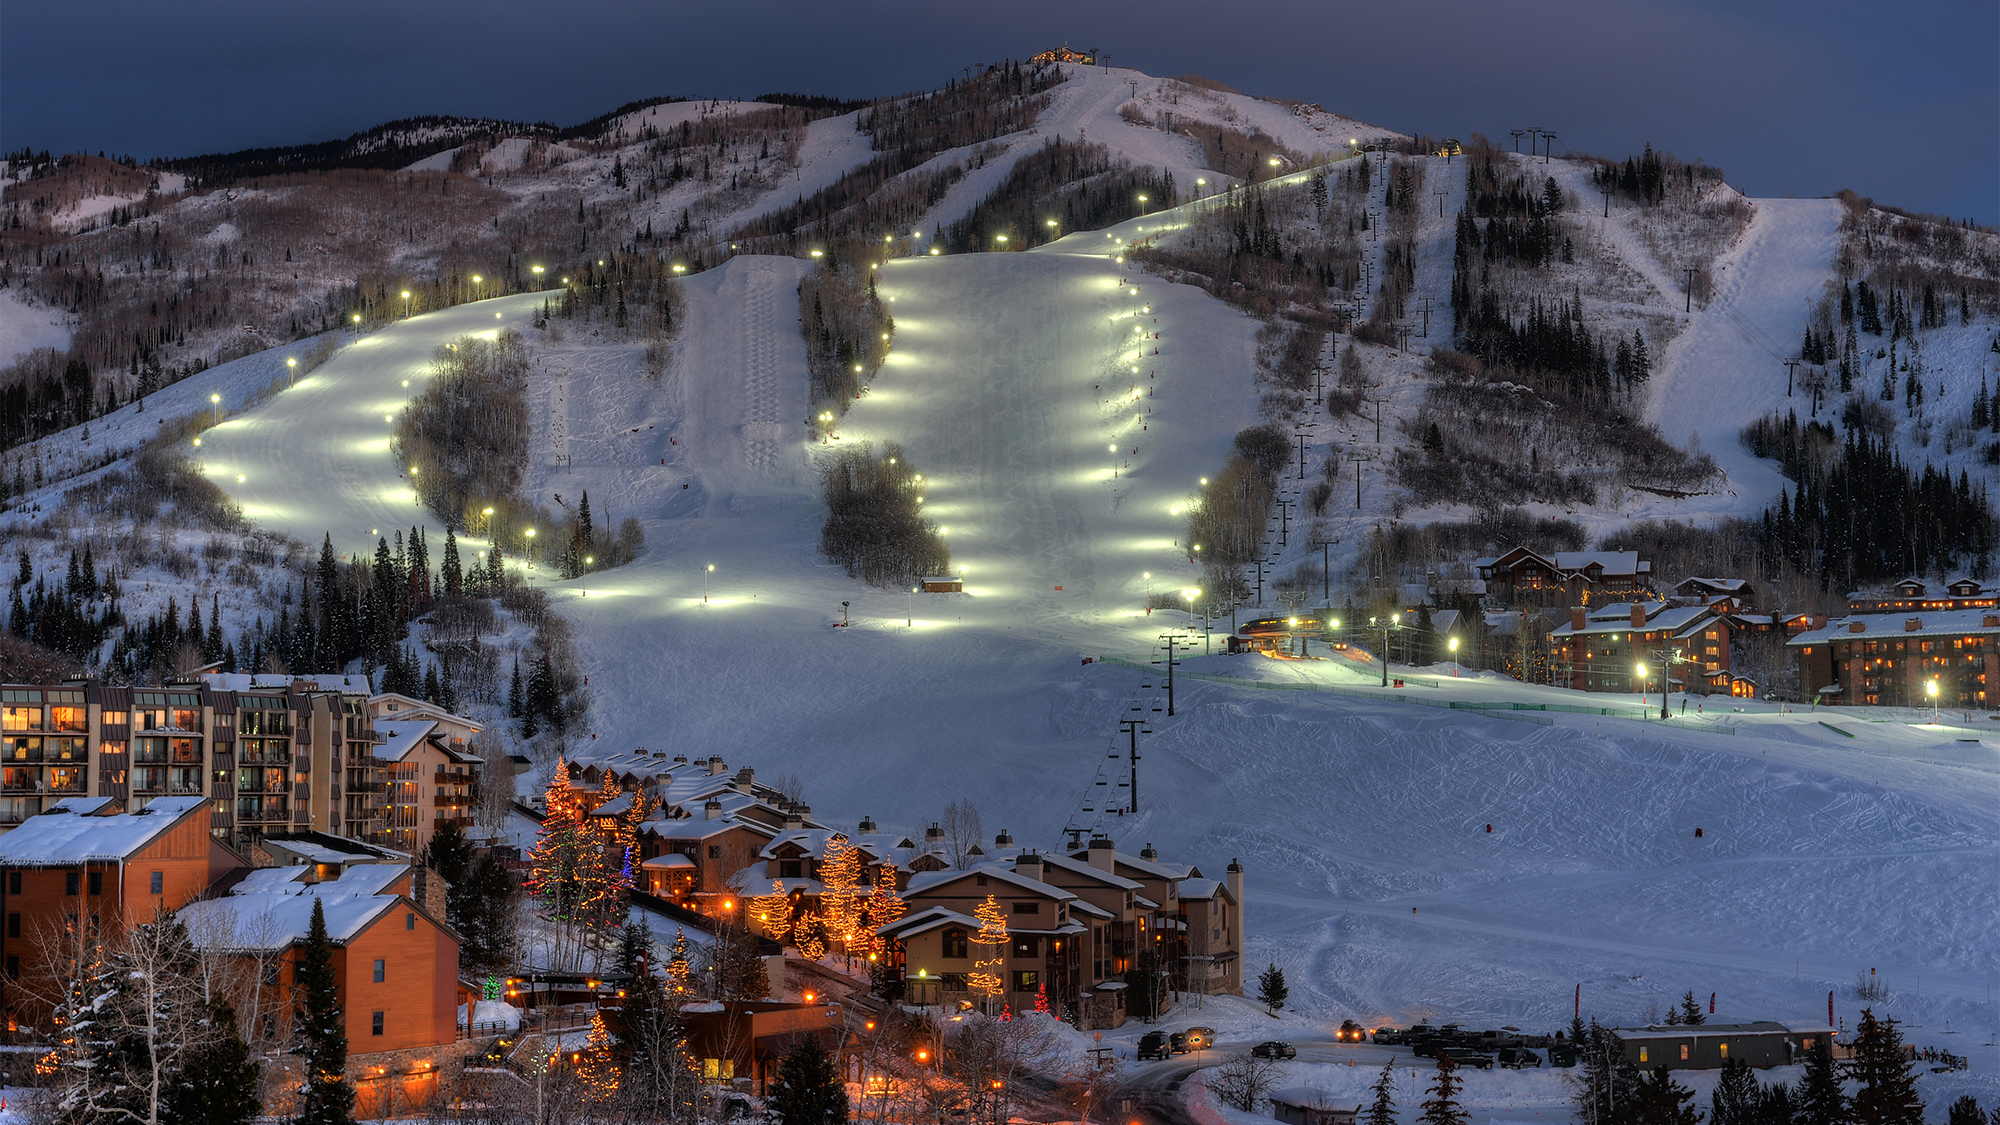 ksl capital, aspen skiing team up to buy intrawest: travel weekly